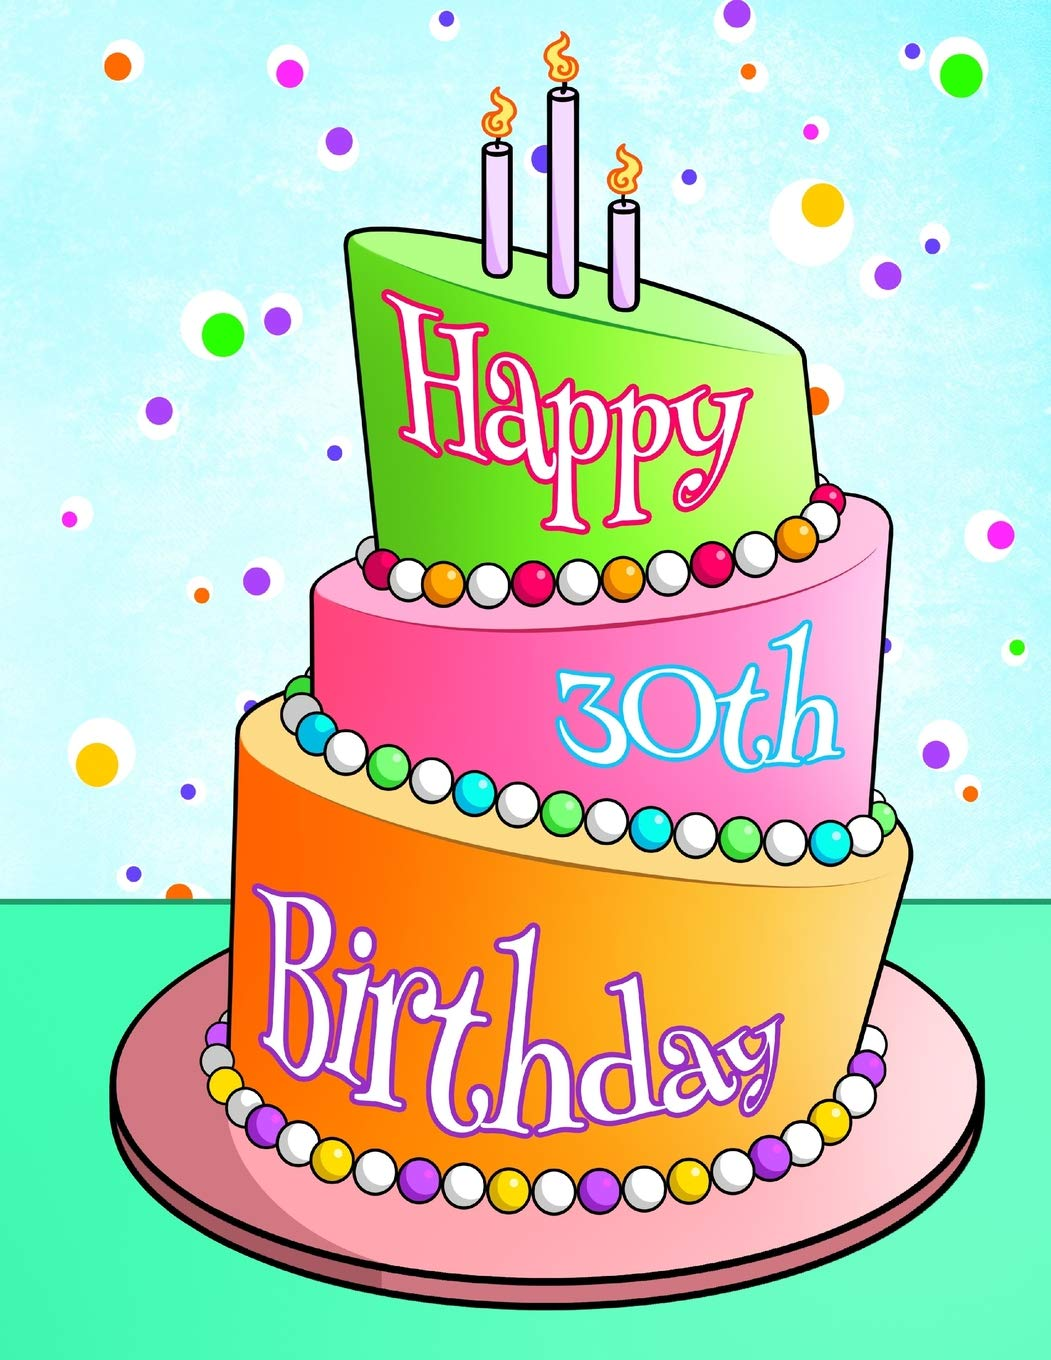 Happy 30th Birthday Cake With Candles Themed Book Use As A Notebook Journal Or Diary105 Lined Pages To Write In Cute Gifts